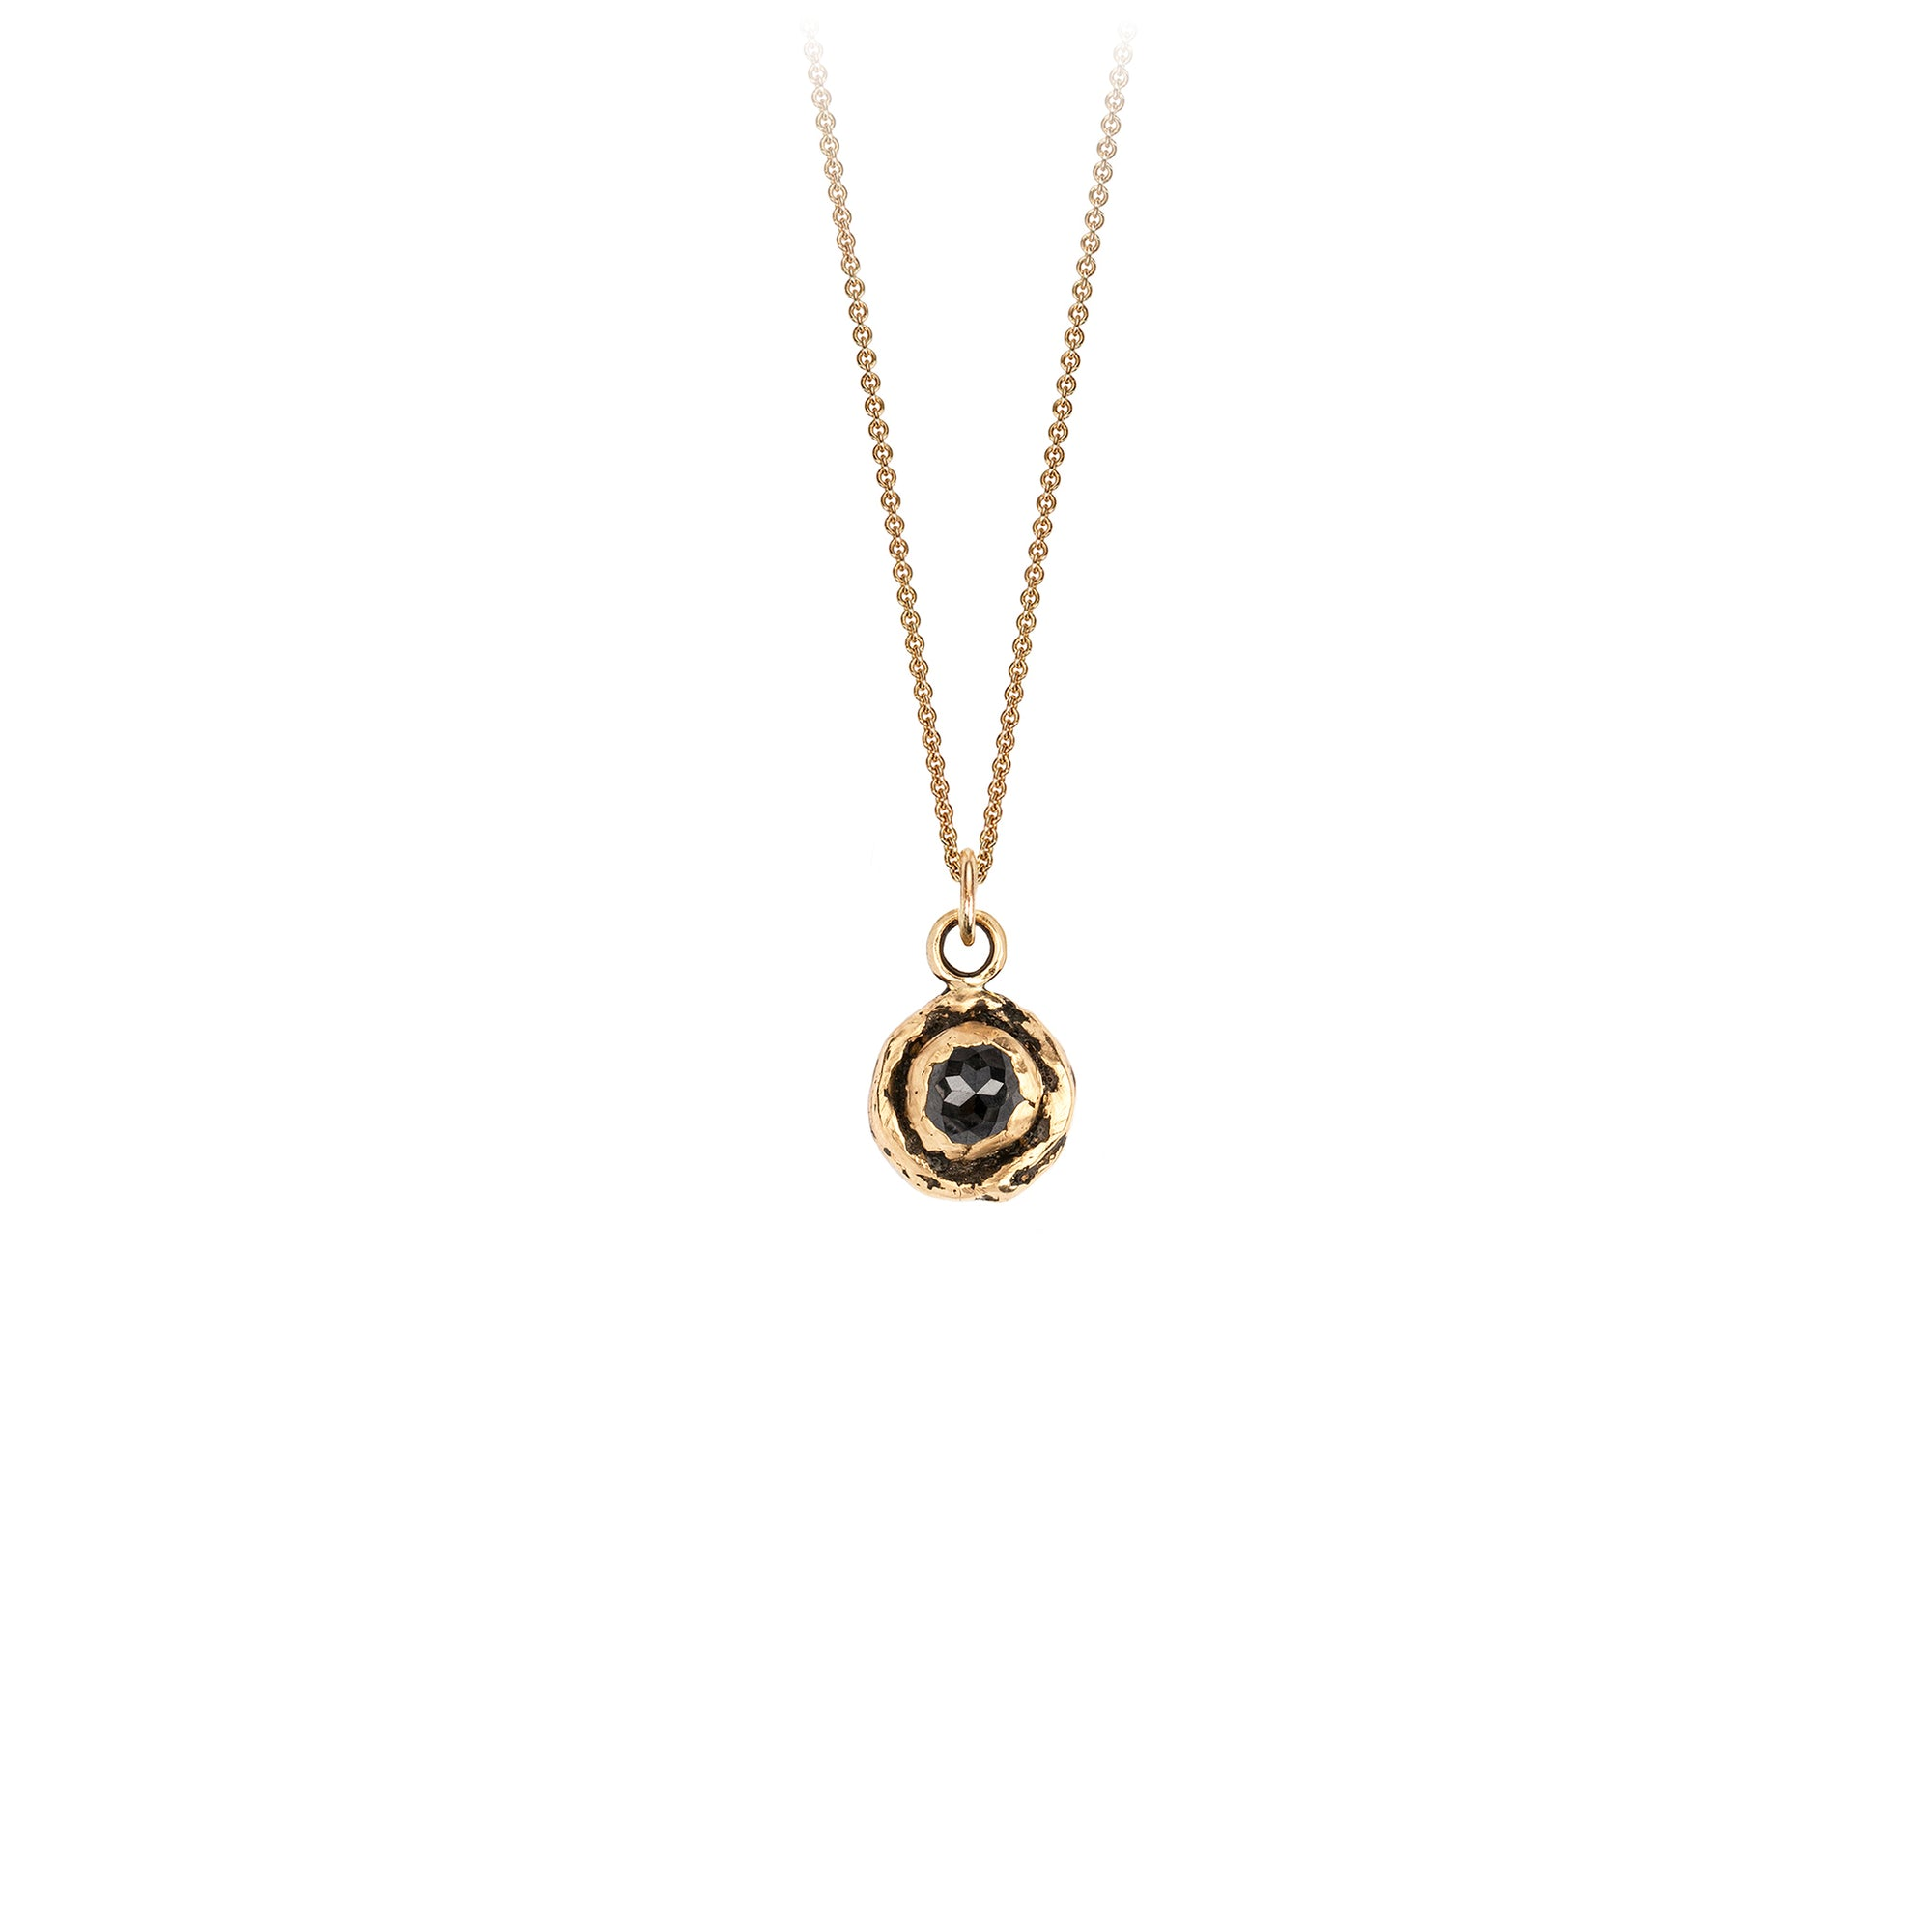 Pyrrha Small Charcoal Diamond 14K Gold Faceted Stone Necklace